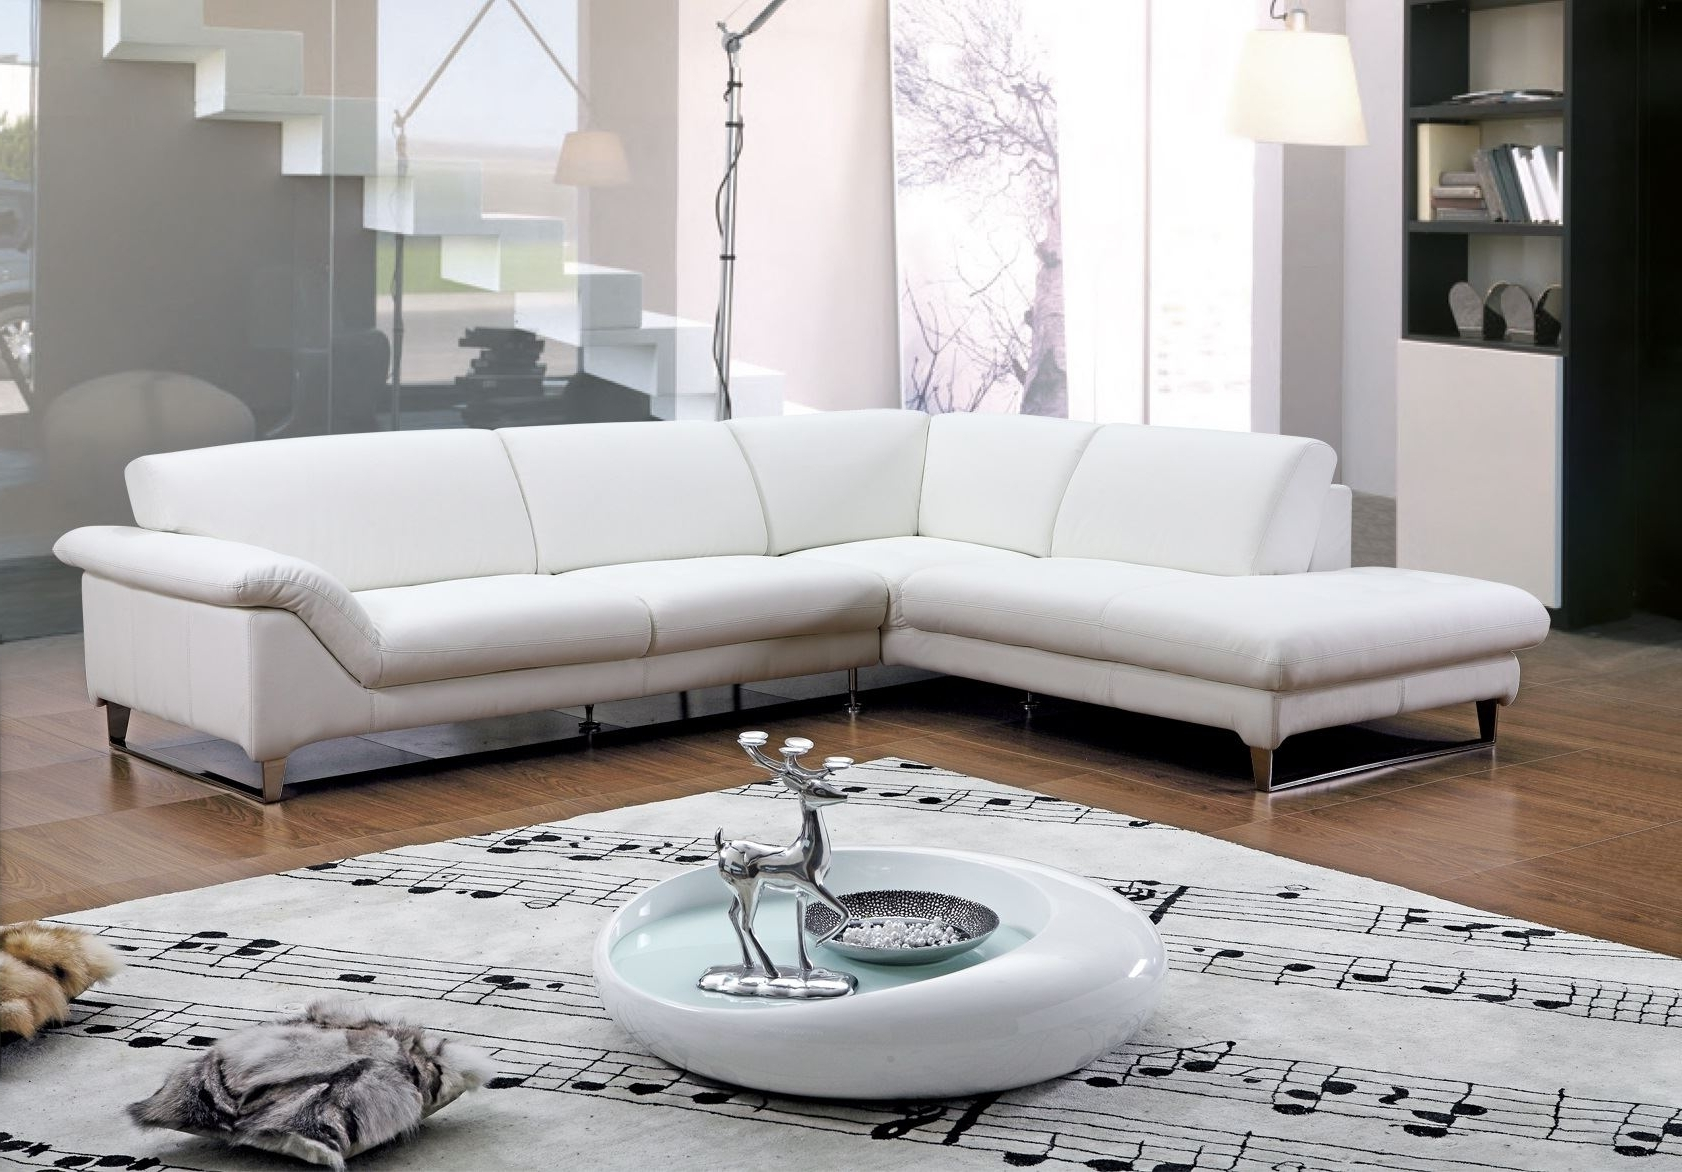 Well Liked Small Leather Corner Sofas 52 With Small Leather Corner Sofas For White Leather Corner Sofas (View 13 of 15)